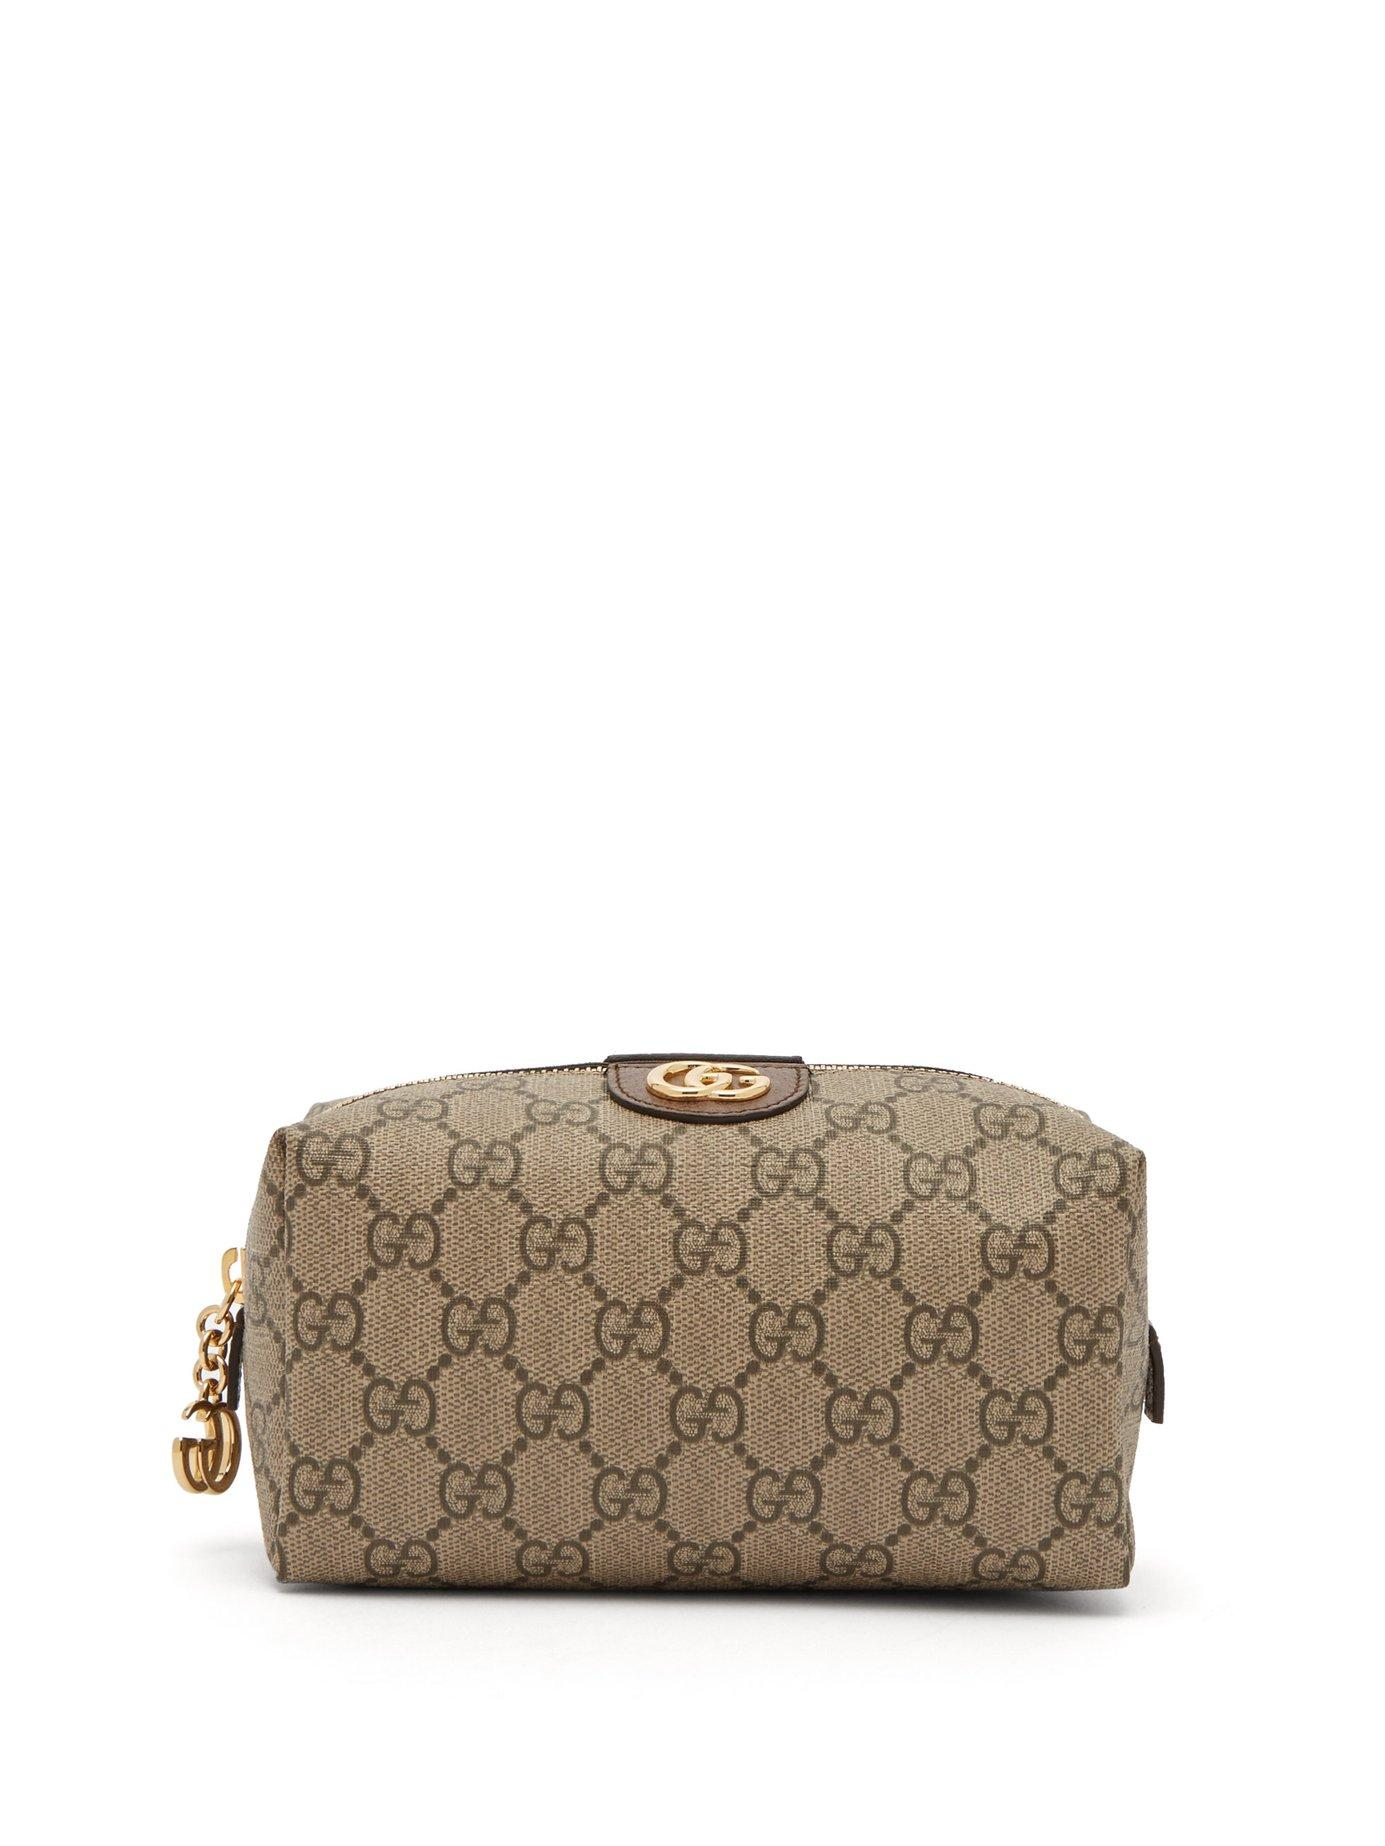 6e0bc7ce2e7 Lyst - Gucci Ophidia Gg Supreme Canvas Make Up Bag in Brown